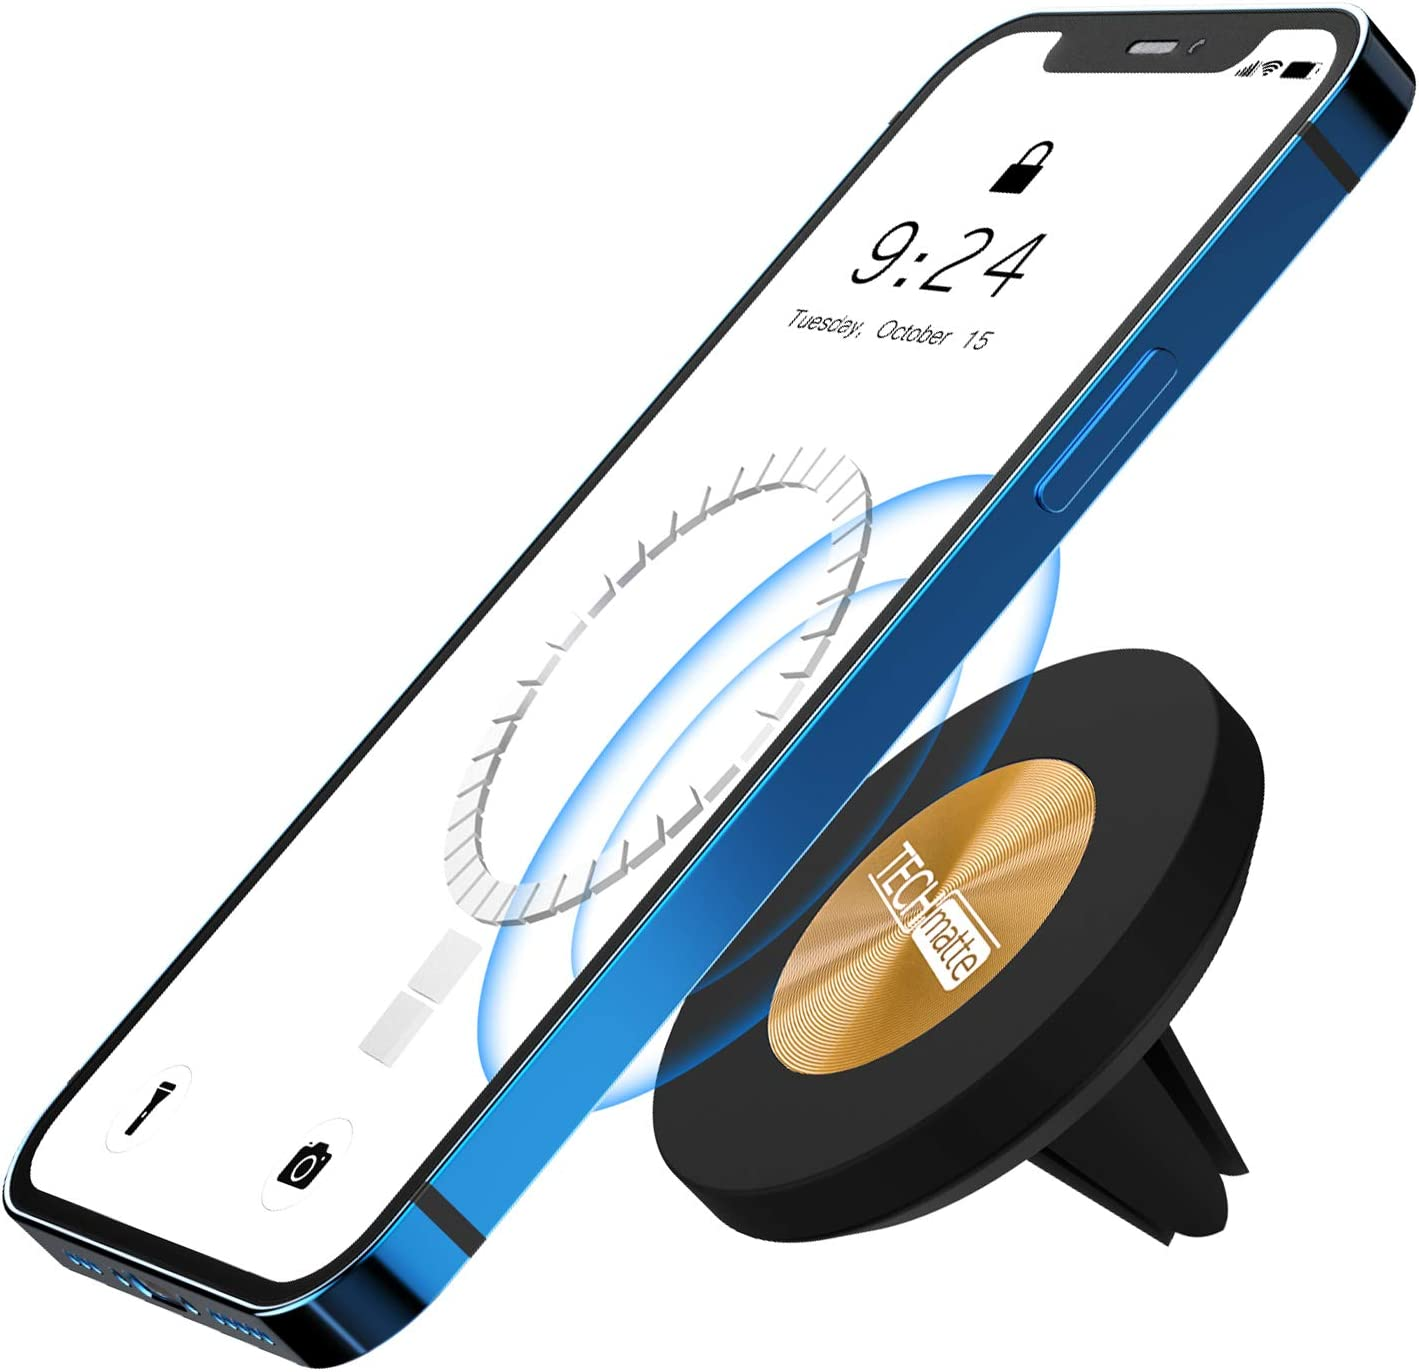 TechMatte MagGrip Magnetic Vent Car Phone Mount Compatible with iPhone 13, iPhone 12, Pro, Pro Max, Mini and MagSafe Case (Gold)